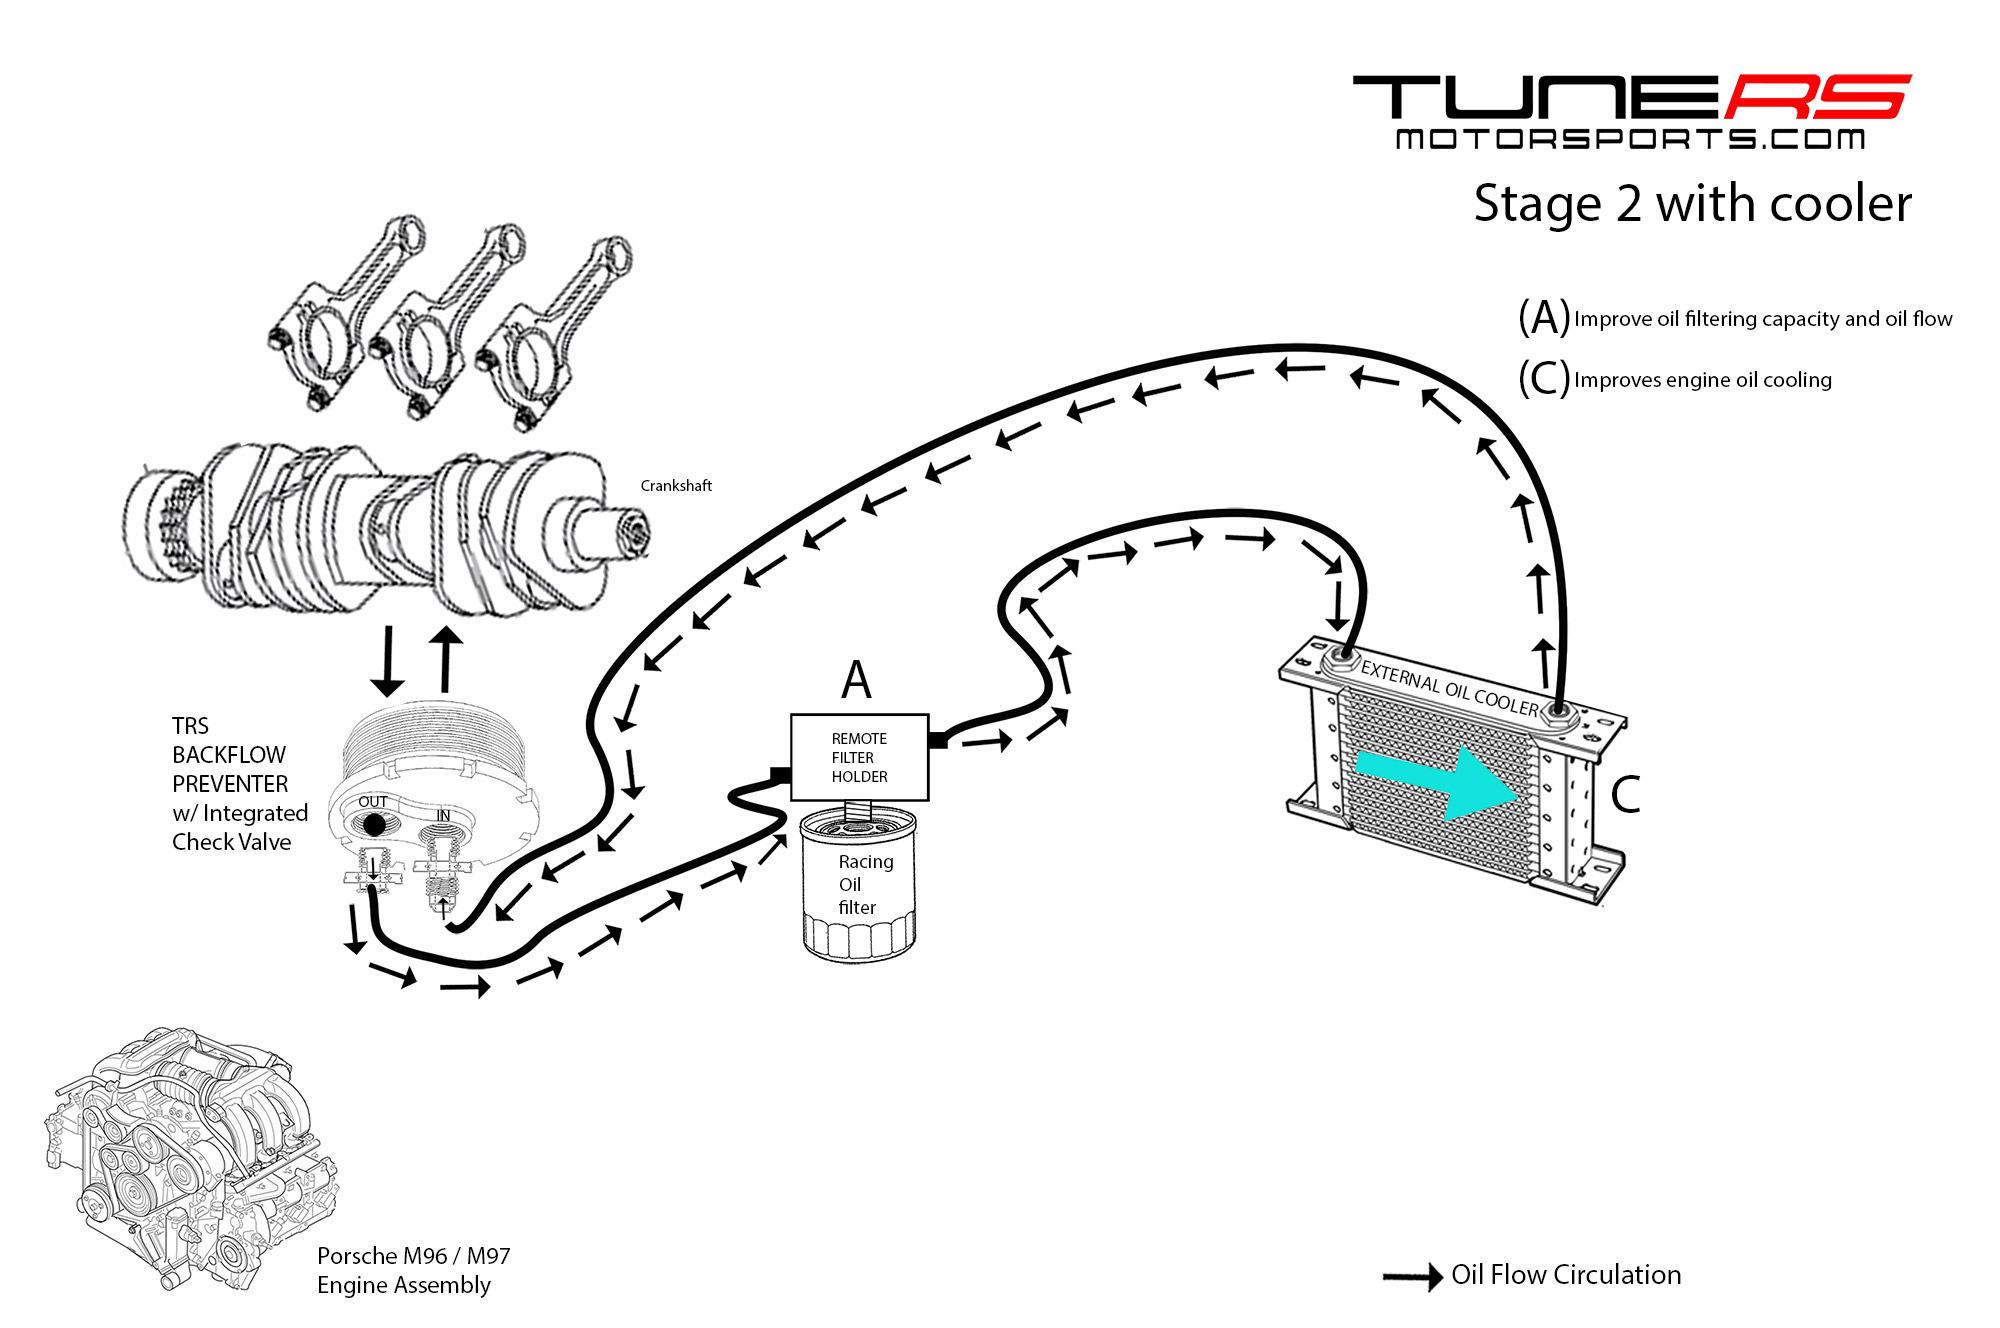 STAGE 2 (with cooler)